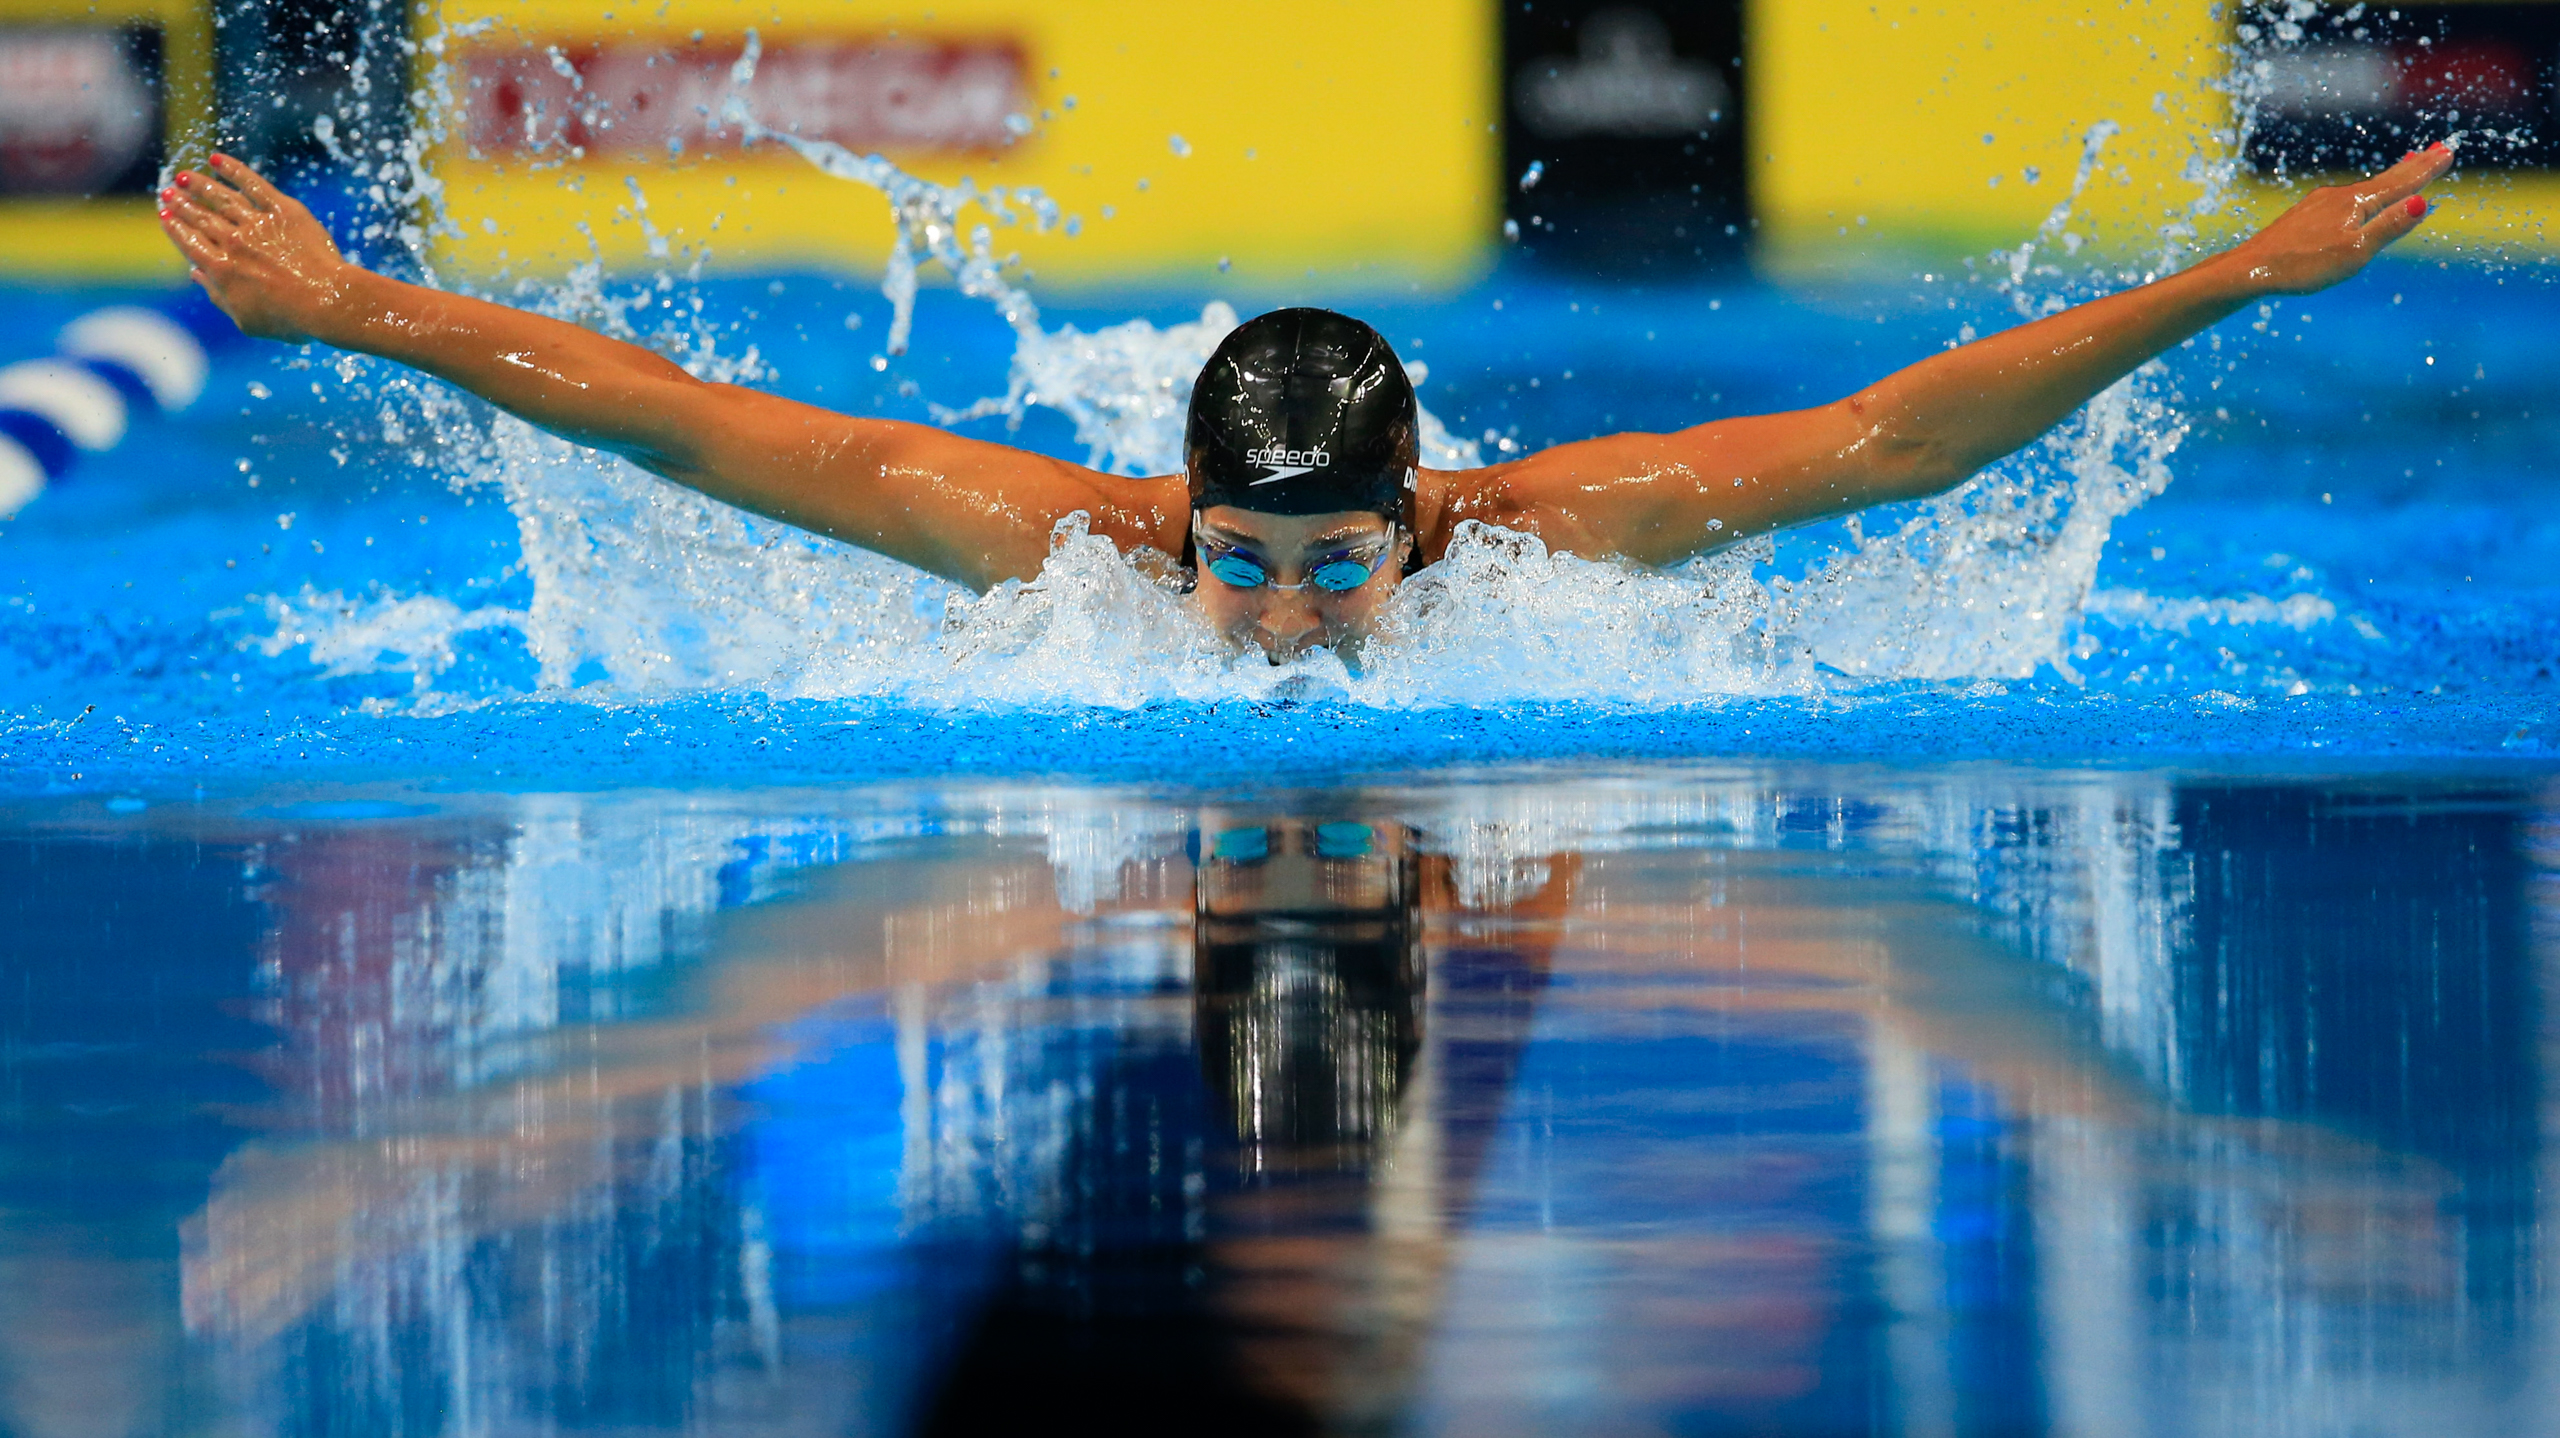 <strong>Maya DiRado, Swimming, USA</strong>DiRado will join Michael Phelps and Katie Ledecky as the only U.S. swimmers to race in three individual events. The Stanford graduate will go head-to-head against reigning Olympic champion and teammate Missy Franklin in the 200-m backstroke.